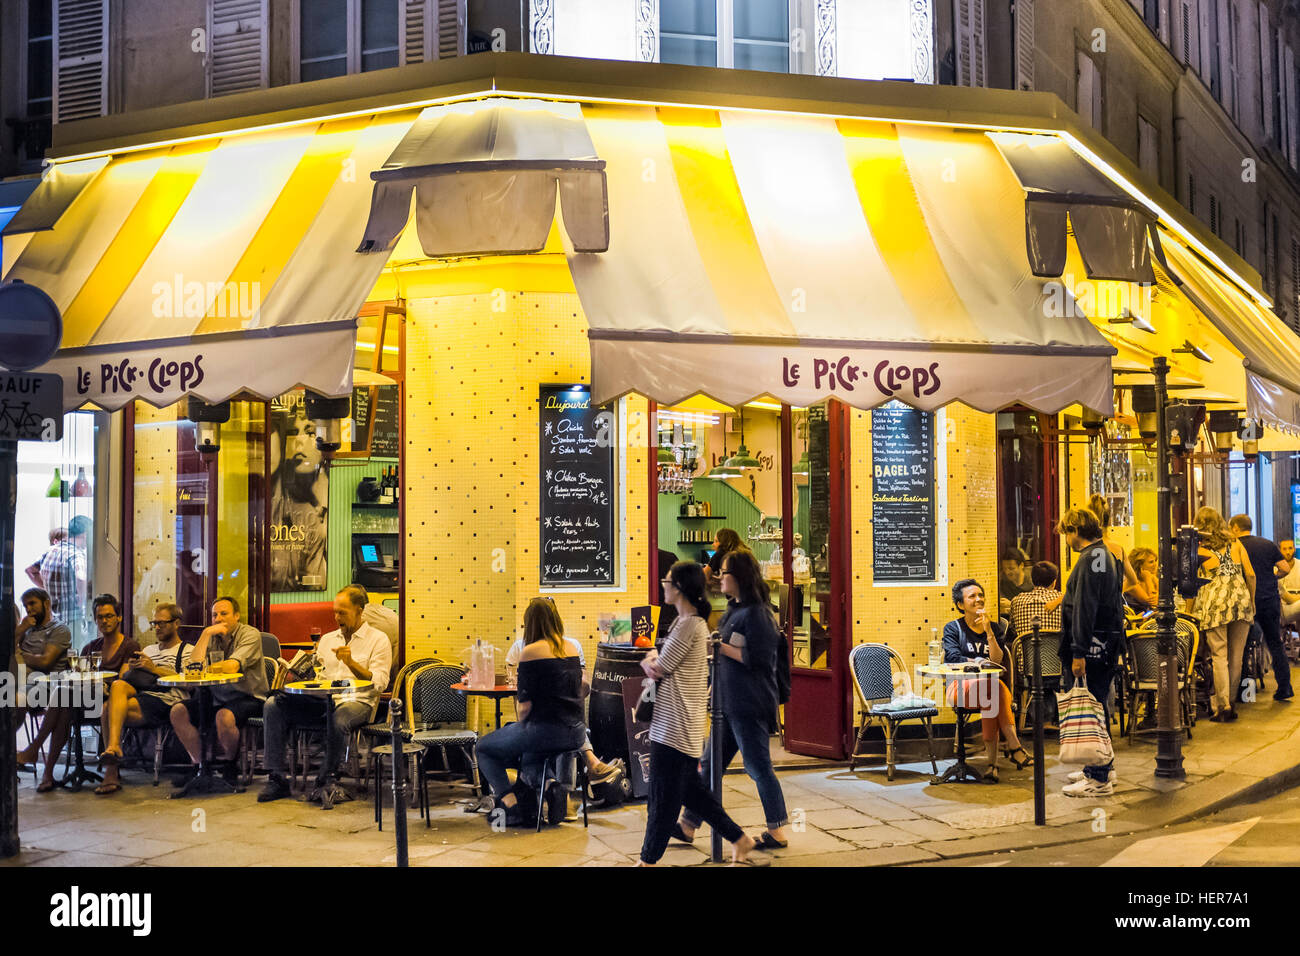 le pick clops cafe brasserie at night stock photo royalty free image 129588425 alamy. Black Bedroom Furniture Sets. Home Design Ideas